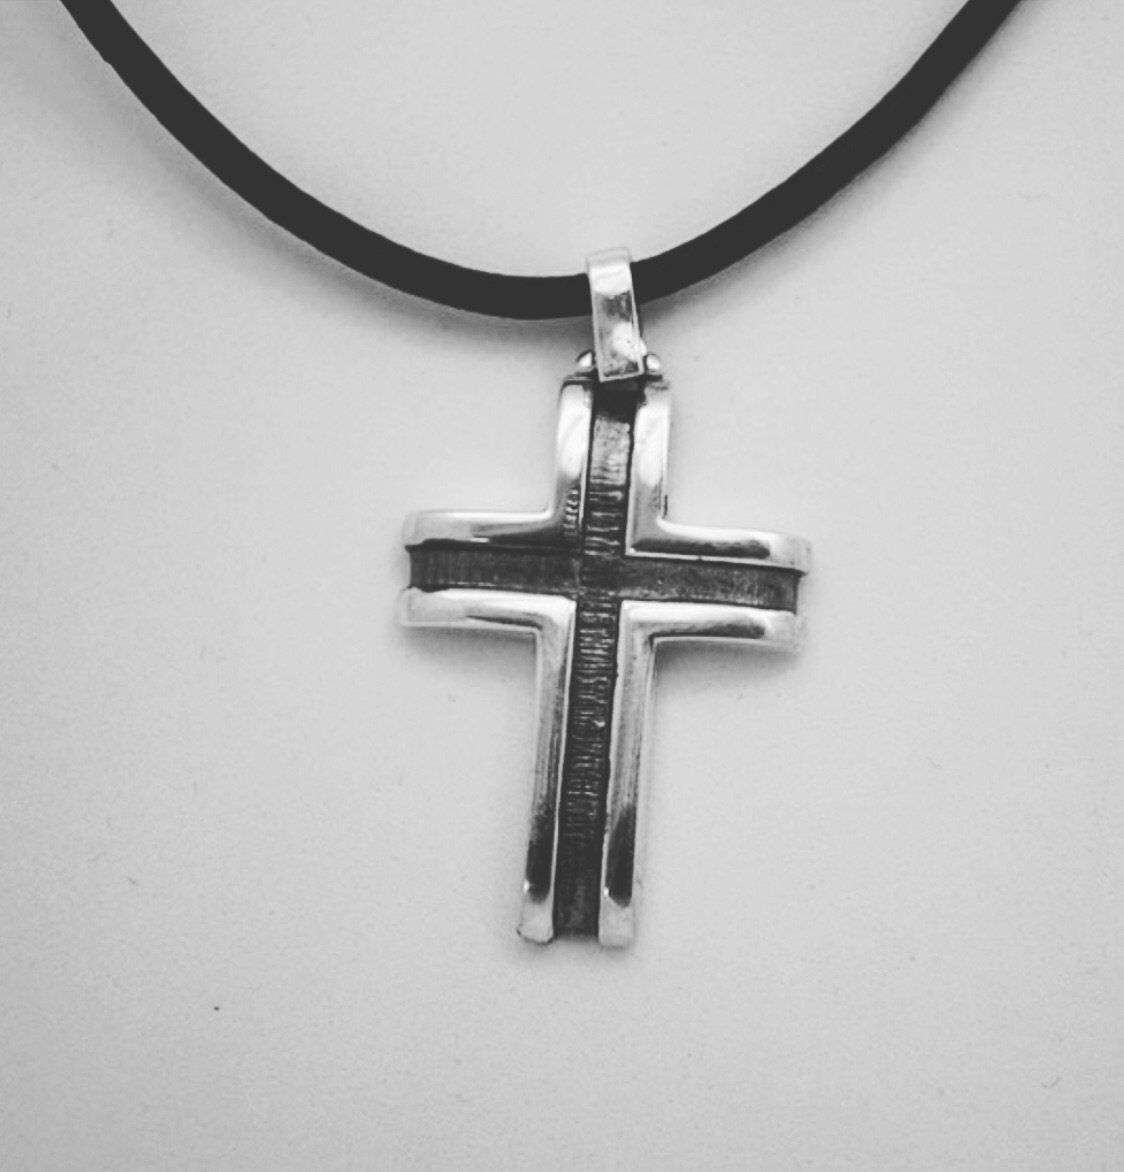 Oxidized Cross With Dove Pendant Oxidized Sterling Silver Cross Charm With a Dove In The Center HpZu14fY